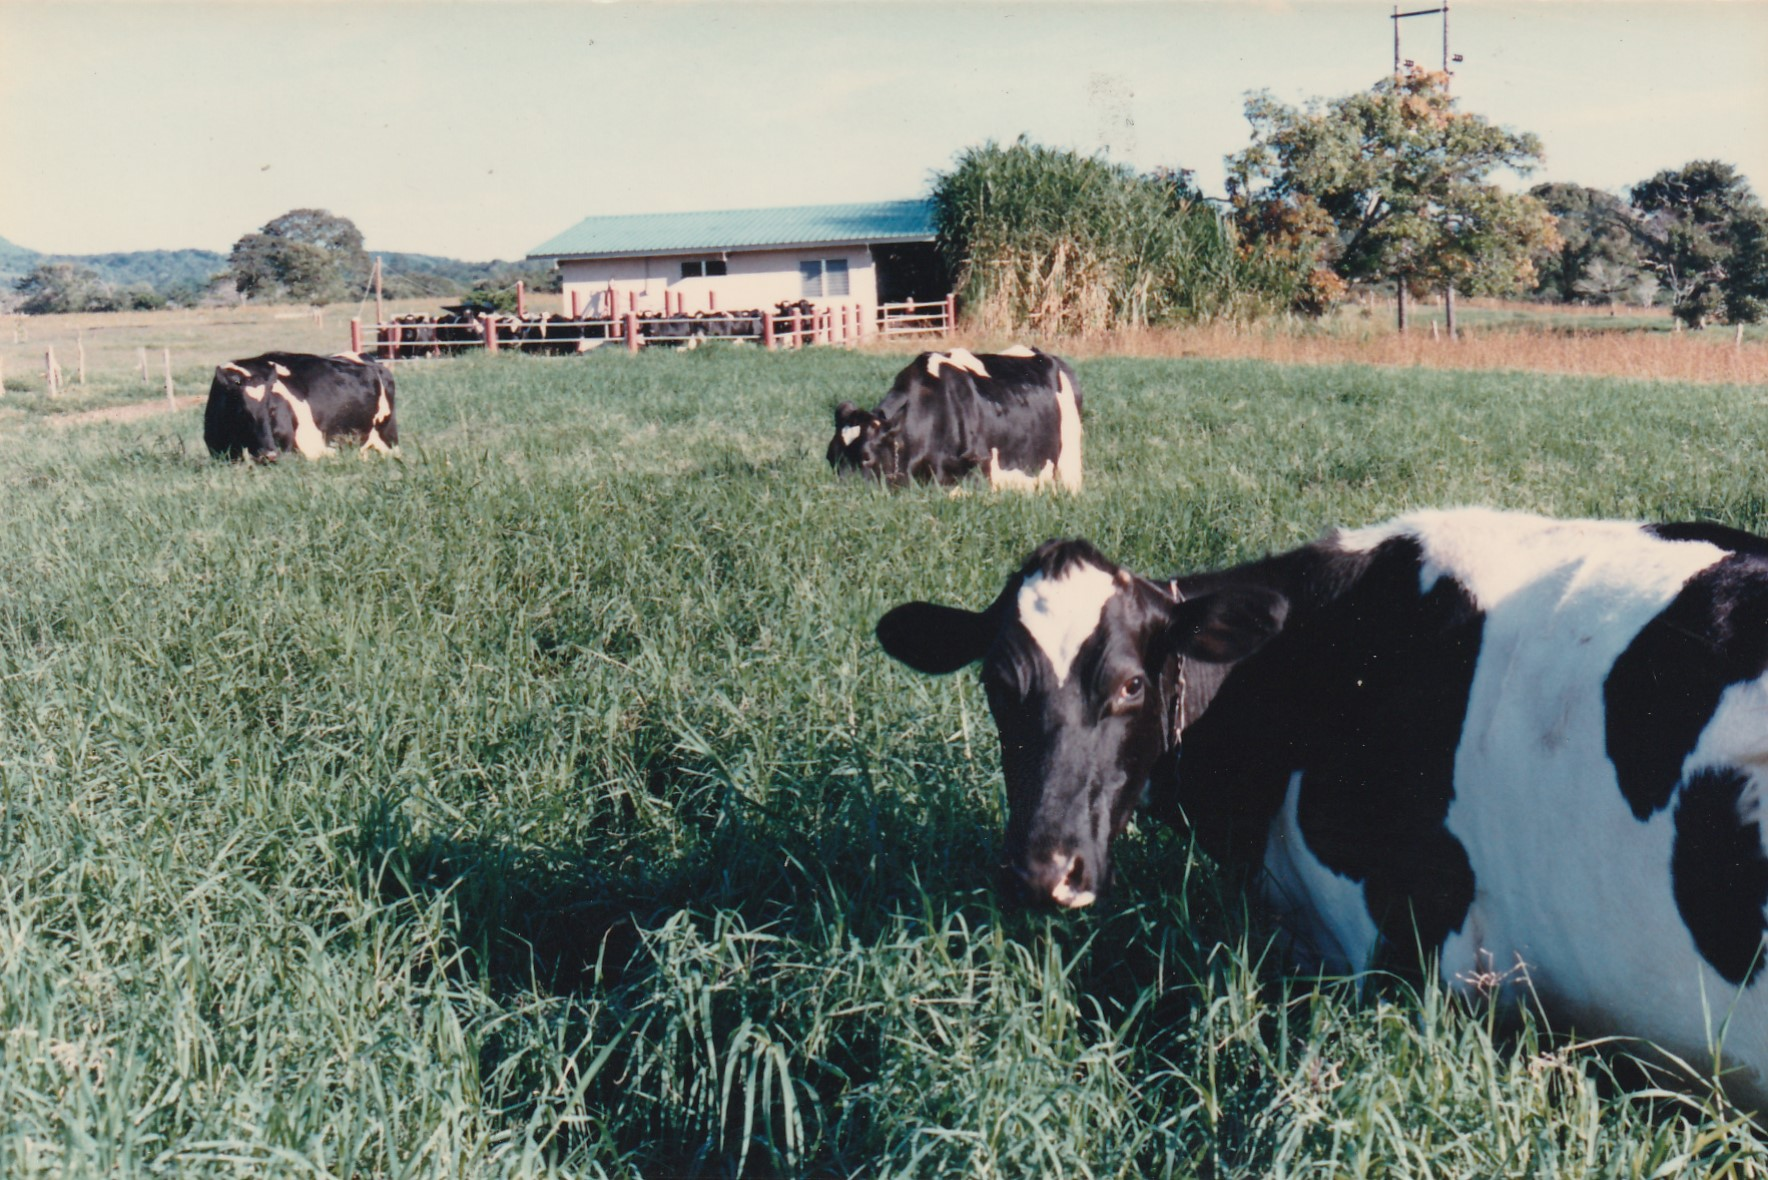 The Peterson's cows grazing at the farm